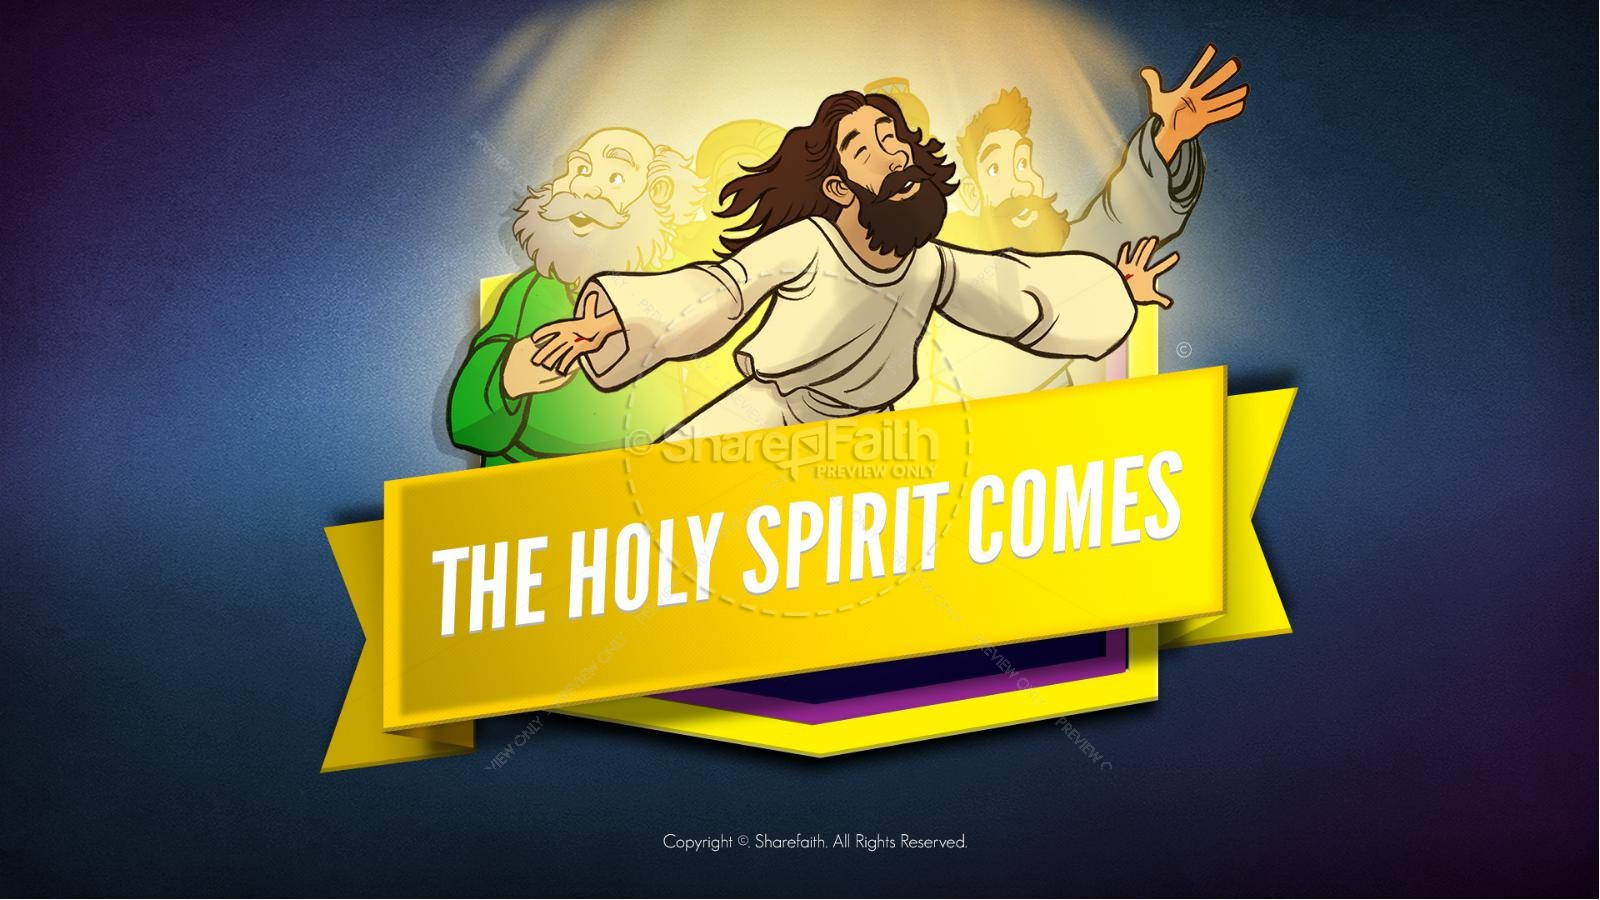 Acts 2 clipart clipart black and white Acts 2 The Holy Spirit Comes Kids Bible Story | Kids Bible Stories clipart black and white